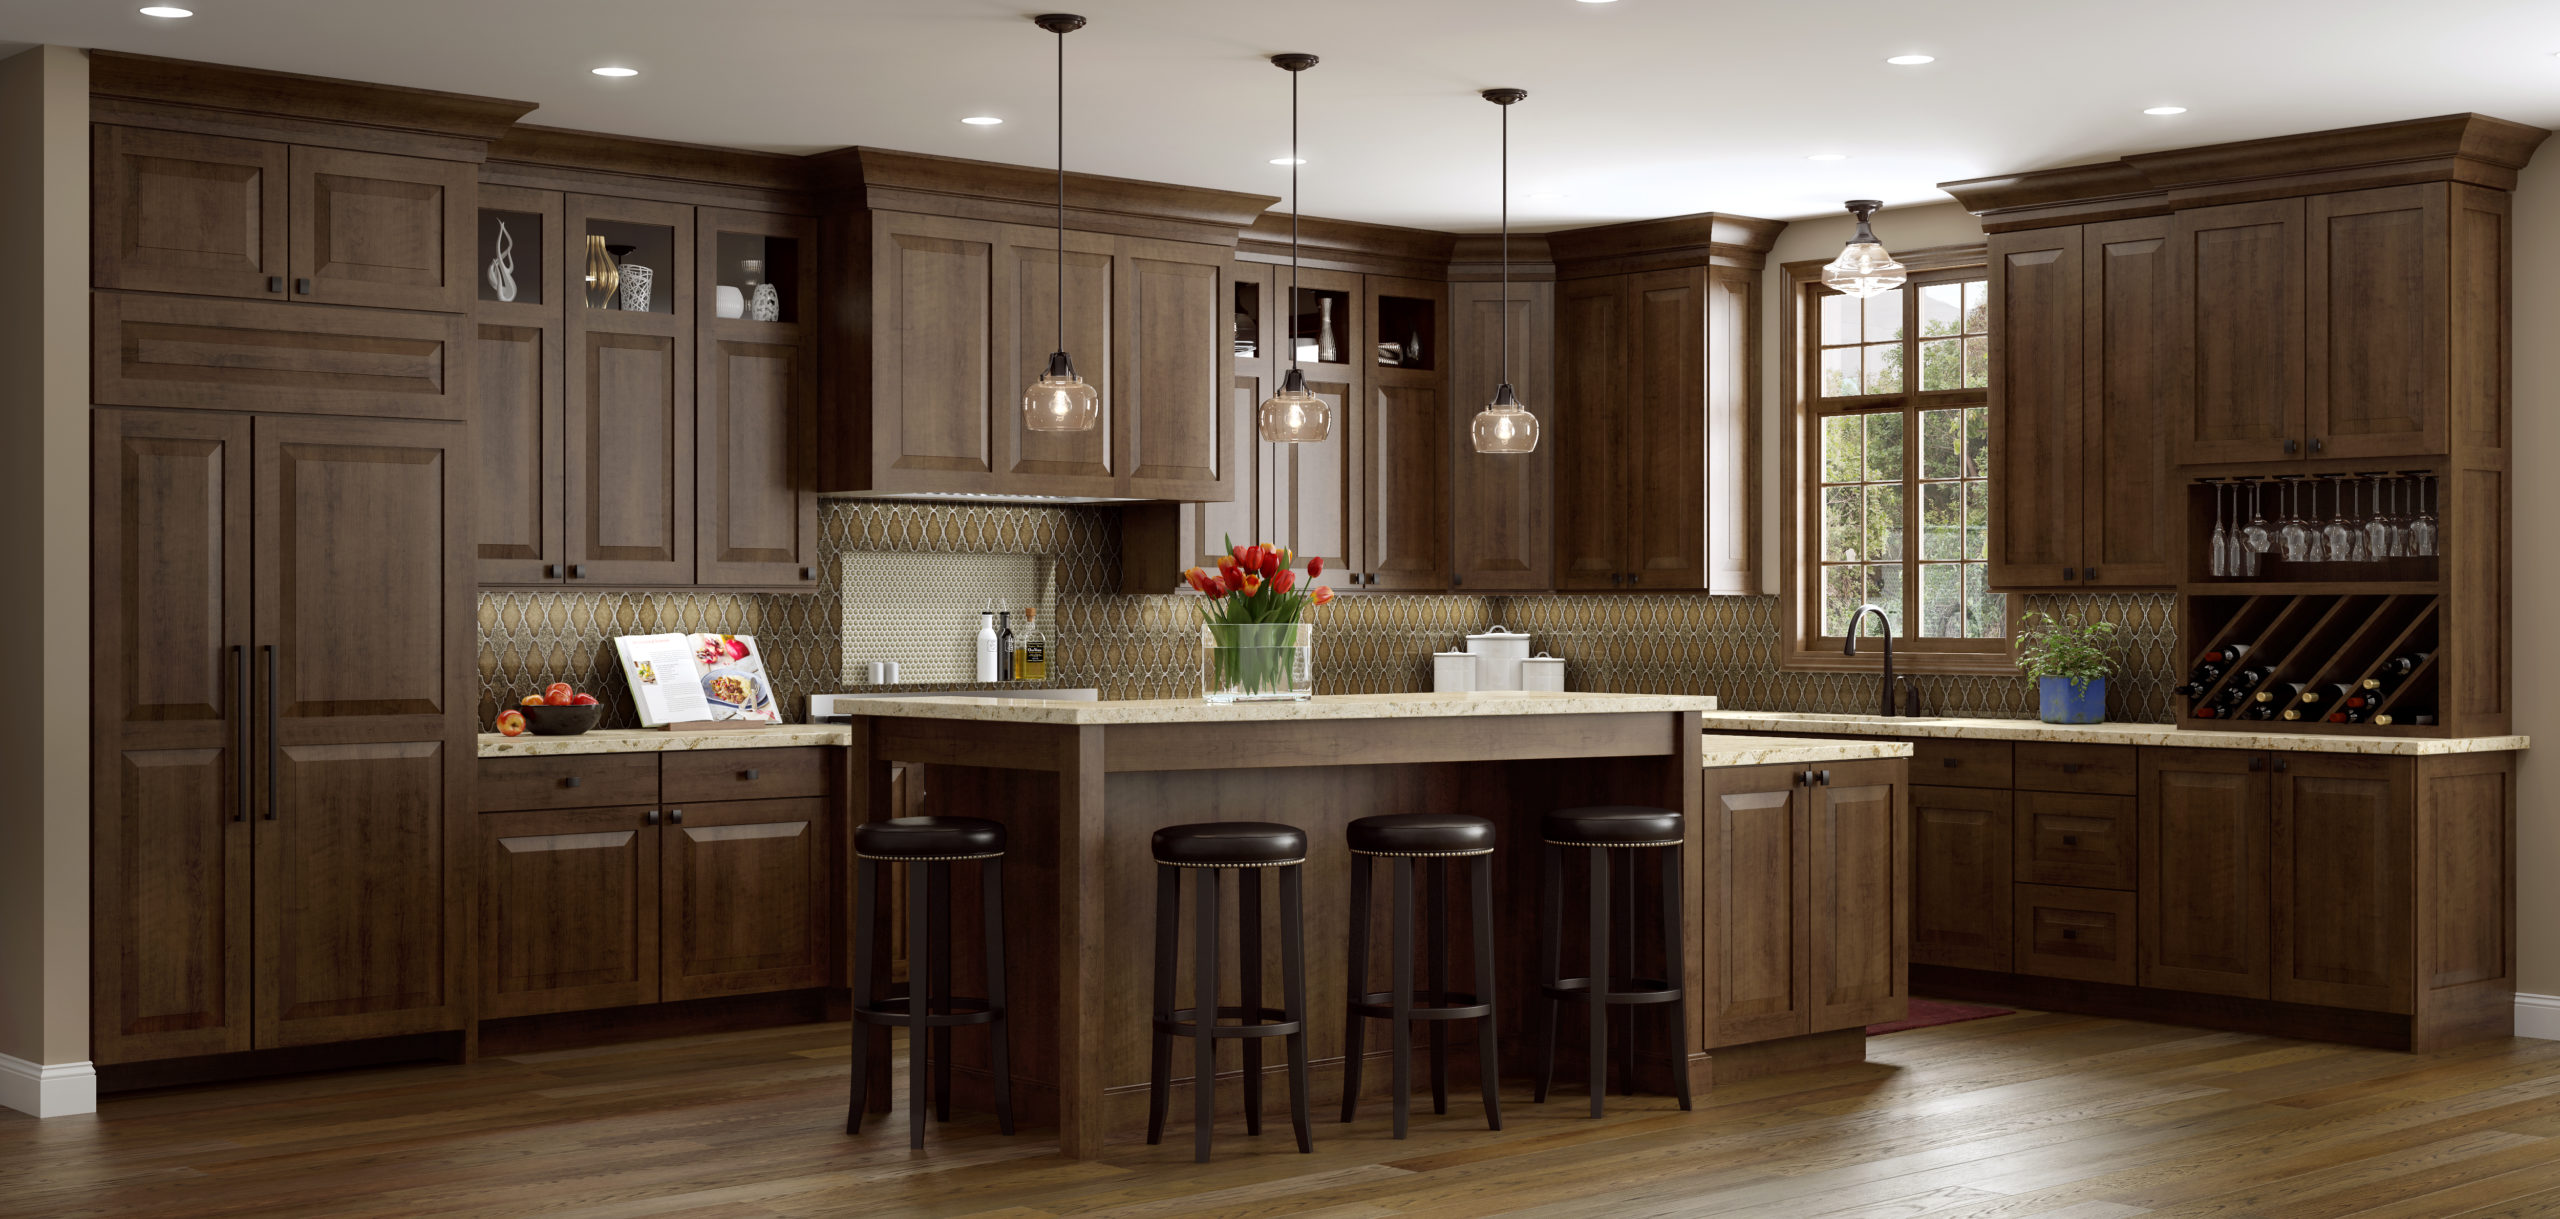 kitchen design chapel hill nc home addition kitchen bathroom design remodeling cary 671